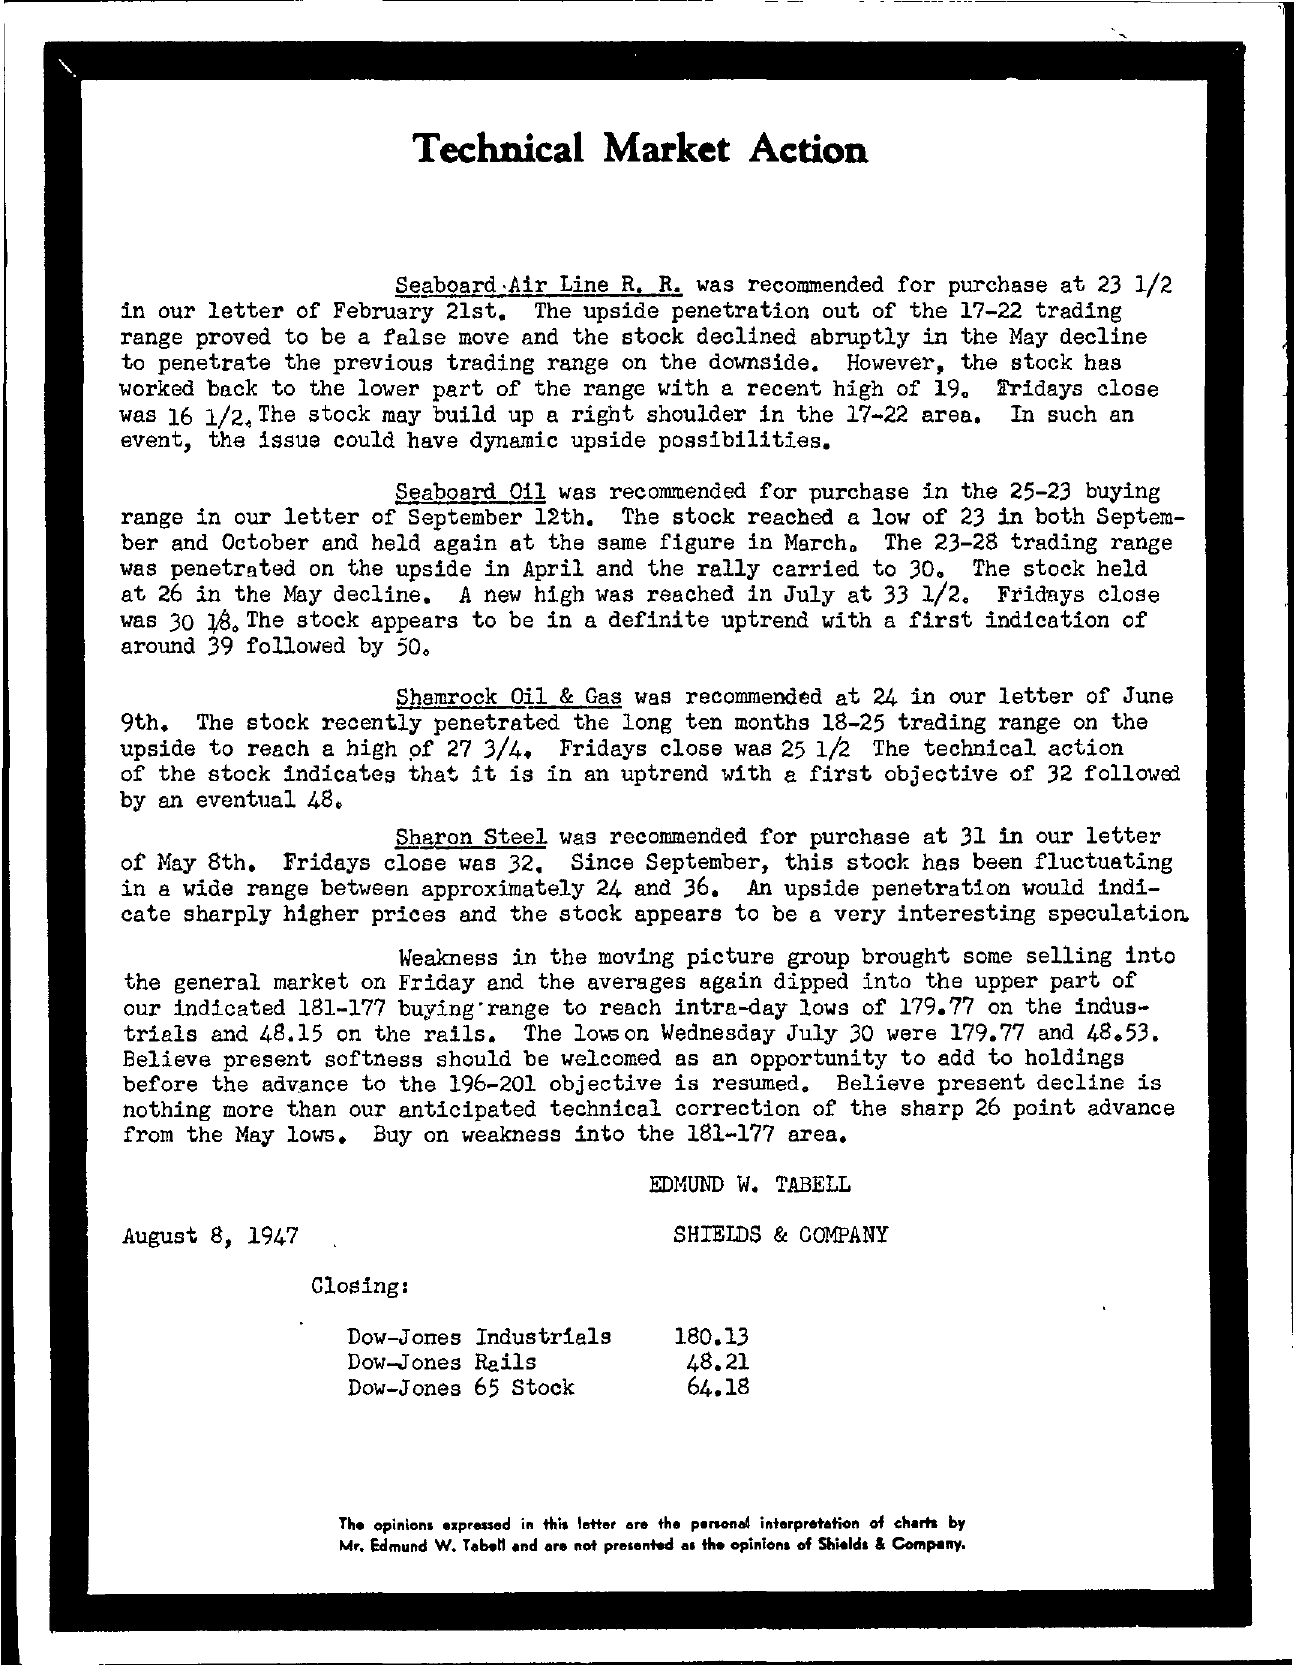 Tabell's Market Letter - August 08, 1947